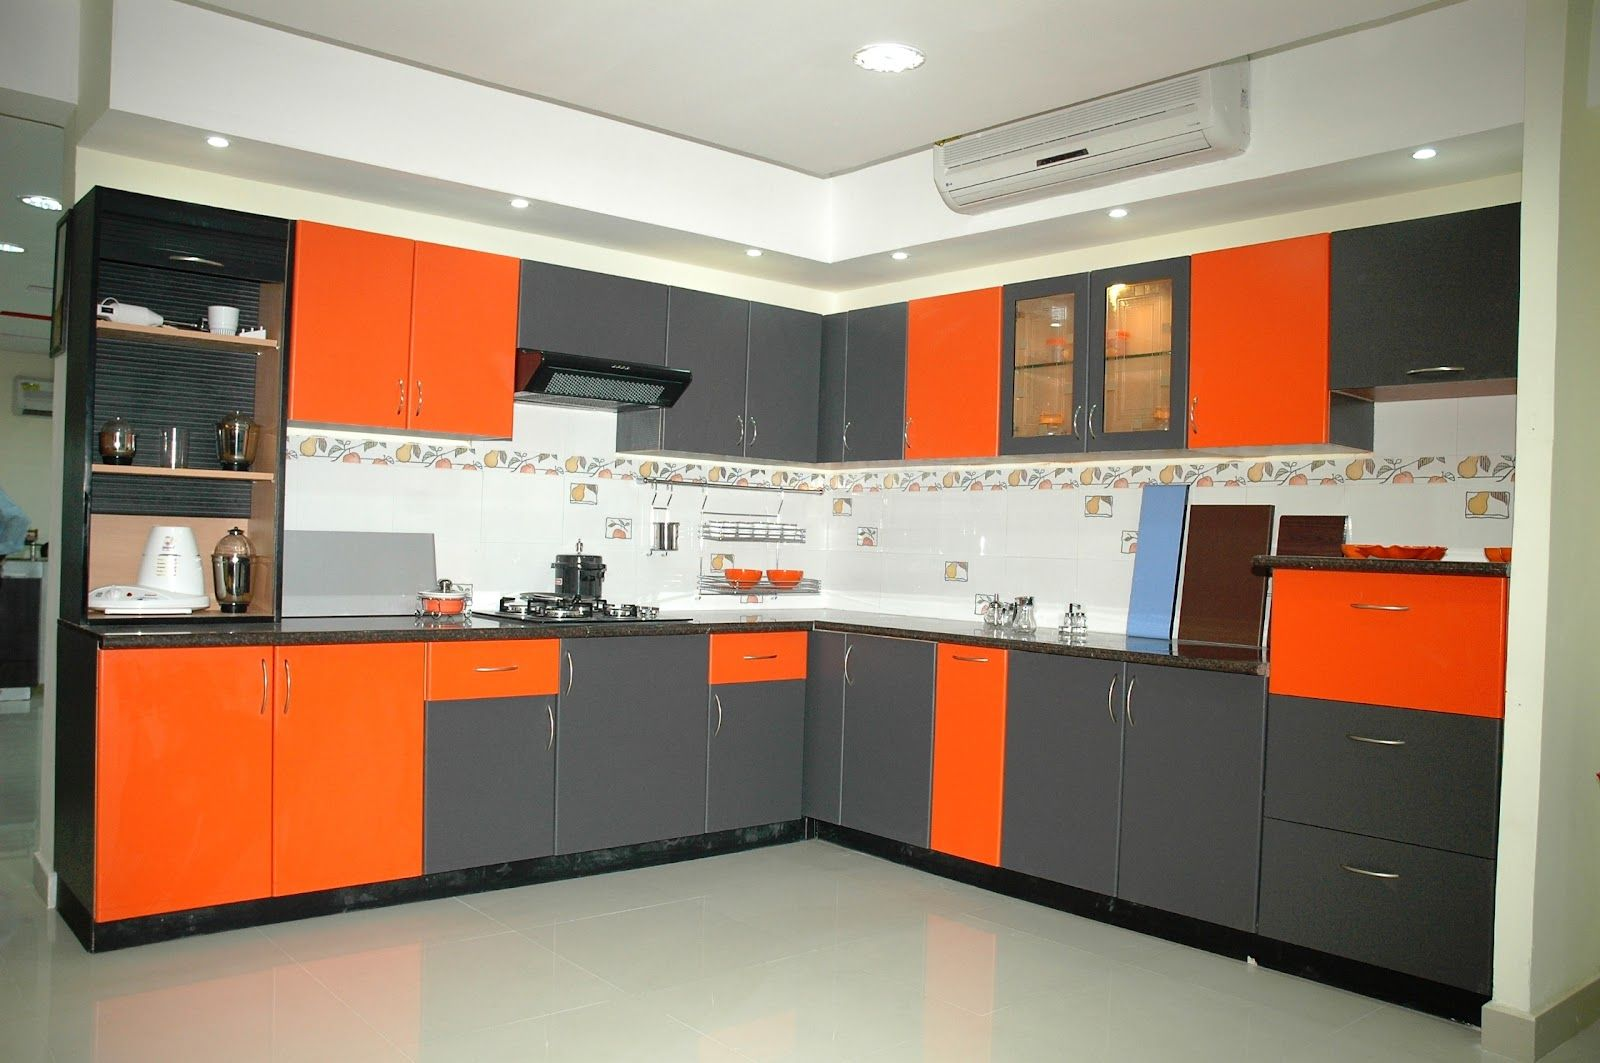 Innovative Small Modular Kitchen Decor Inspirations Exquisite Lshaped With Two Toned Grey And Orange Cabinets Also White